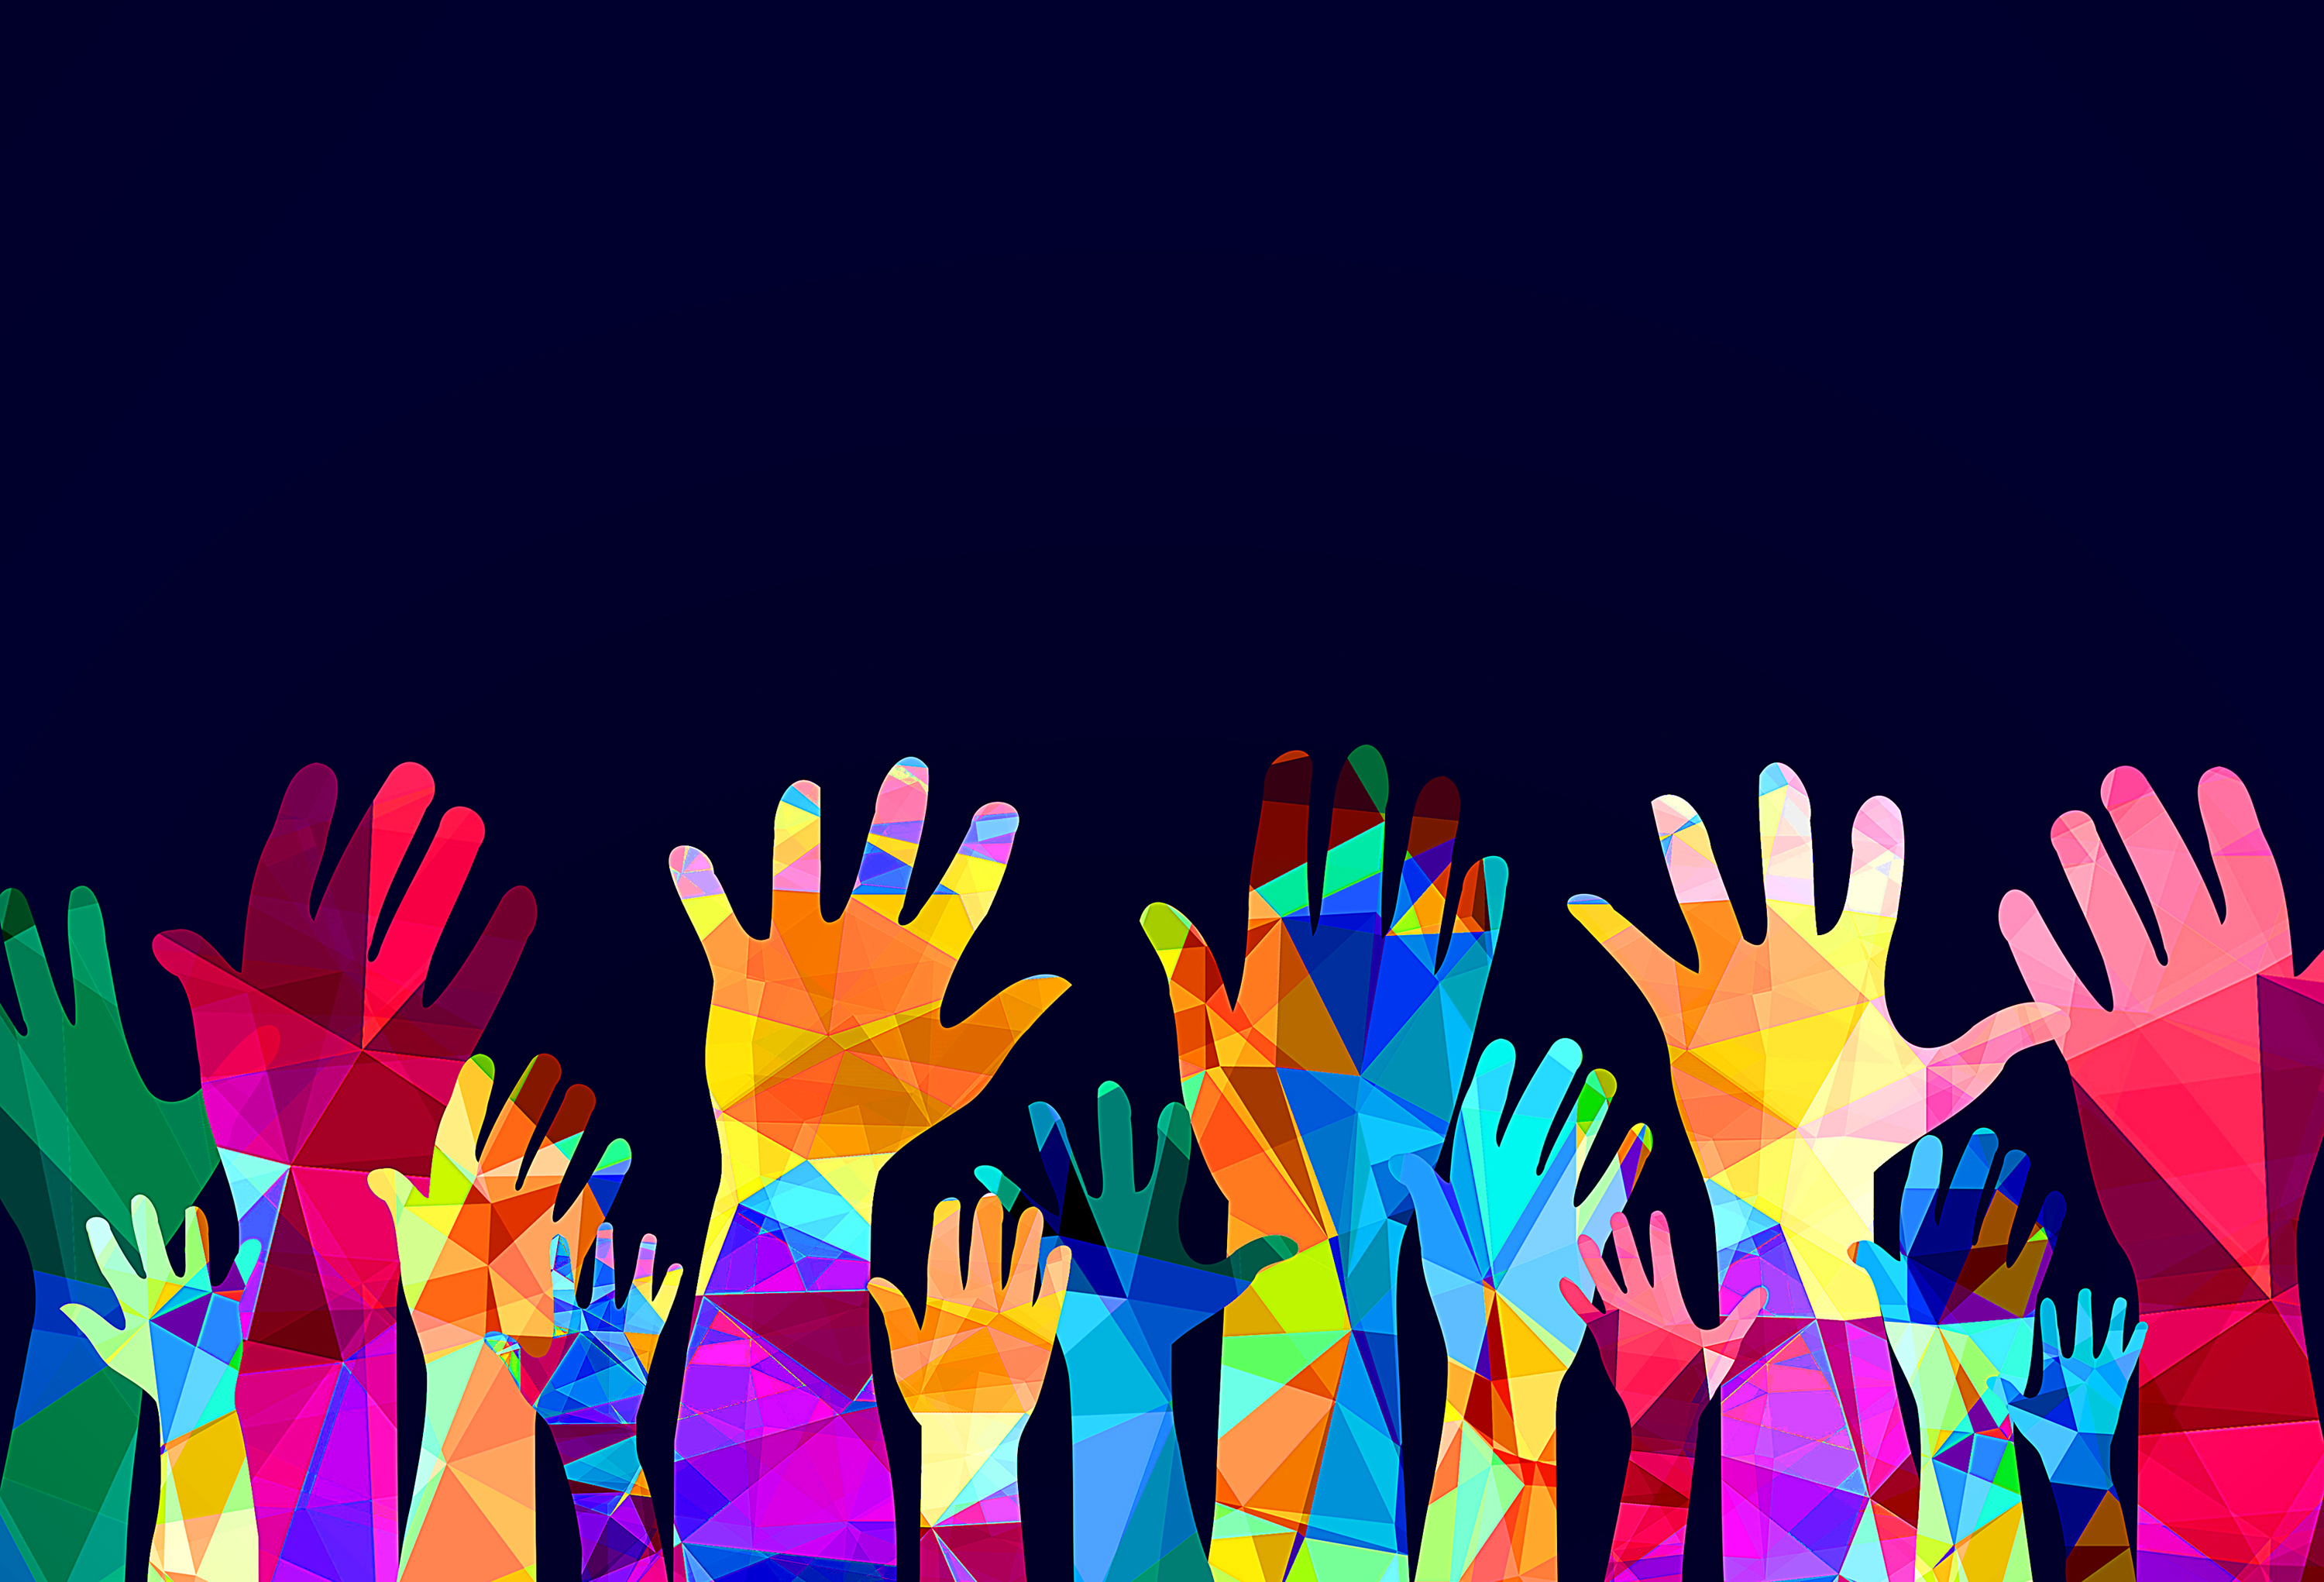 Colorful hands up - happiness or help photo